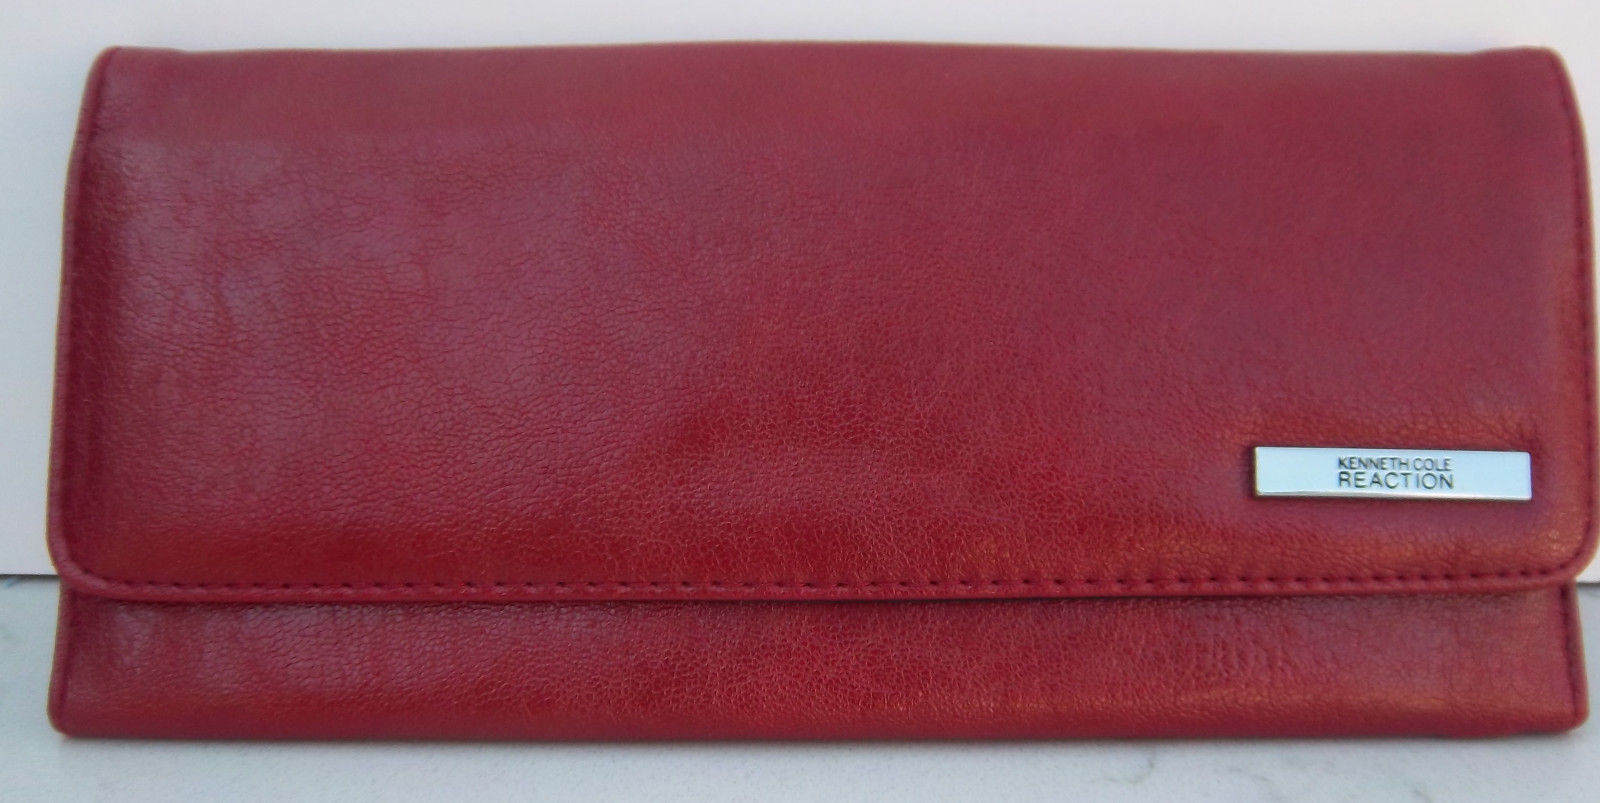 8365ac4c89e5 Kenneth Cole Reaction Women s Red Tri-fold and 50 similar items